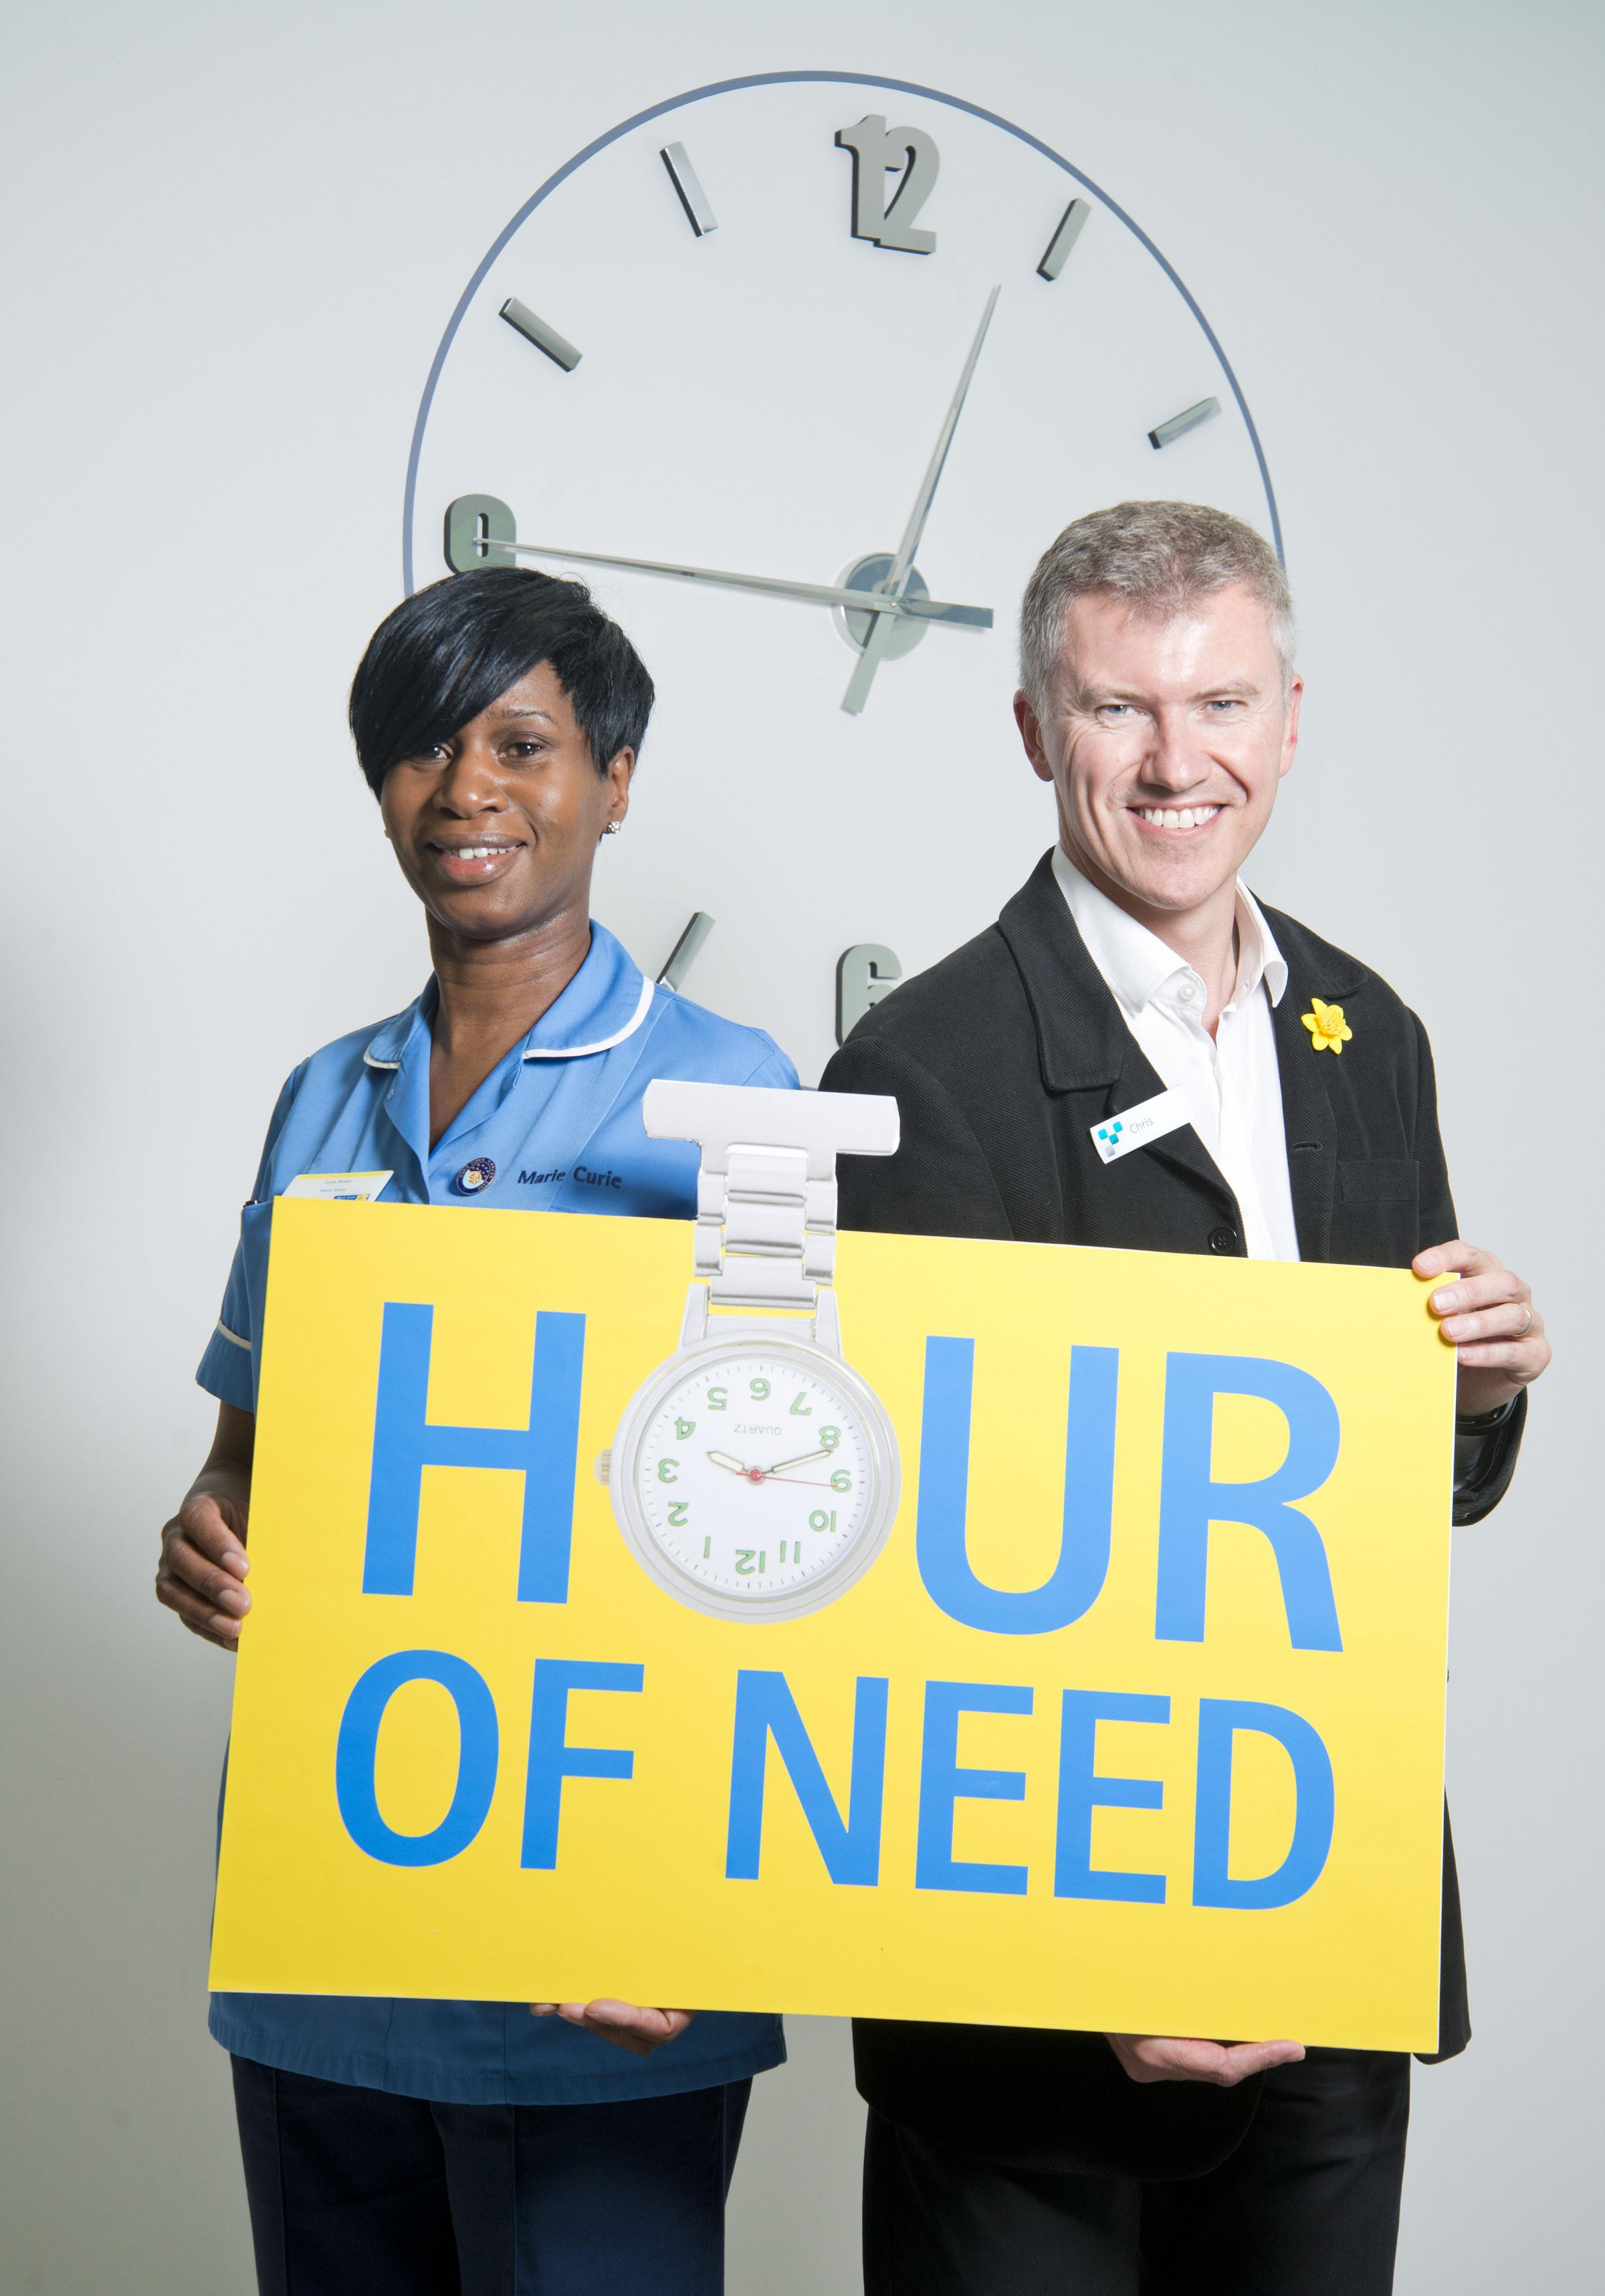 Marie Curie Bradford Hospice Nurse Lola Rowe and the Chief Executive of Yorkshire Building Society Group,  Chris Pilling, announce the Hour of Need fundraisi